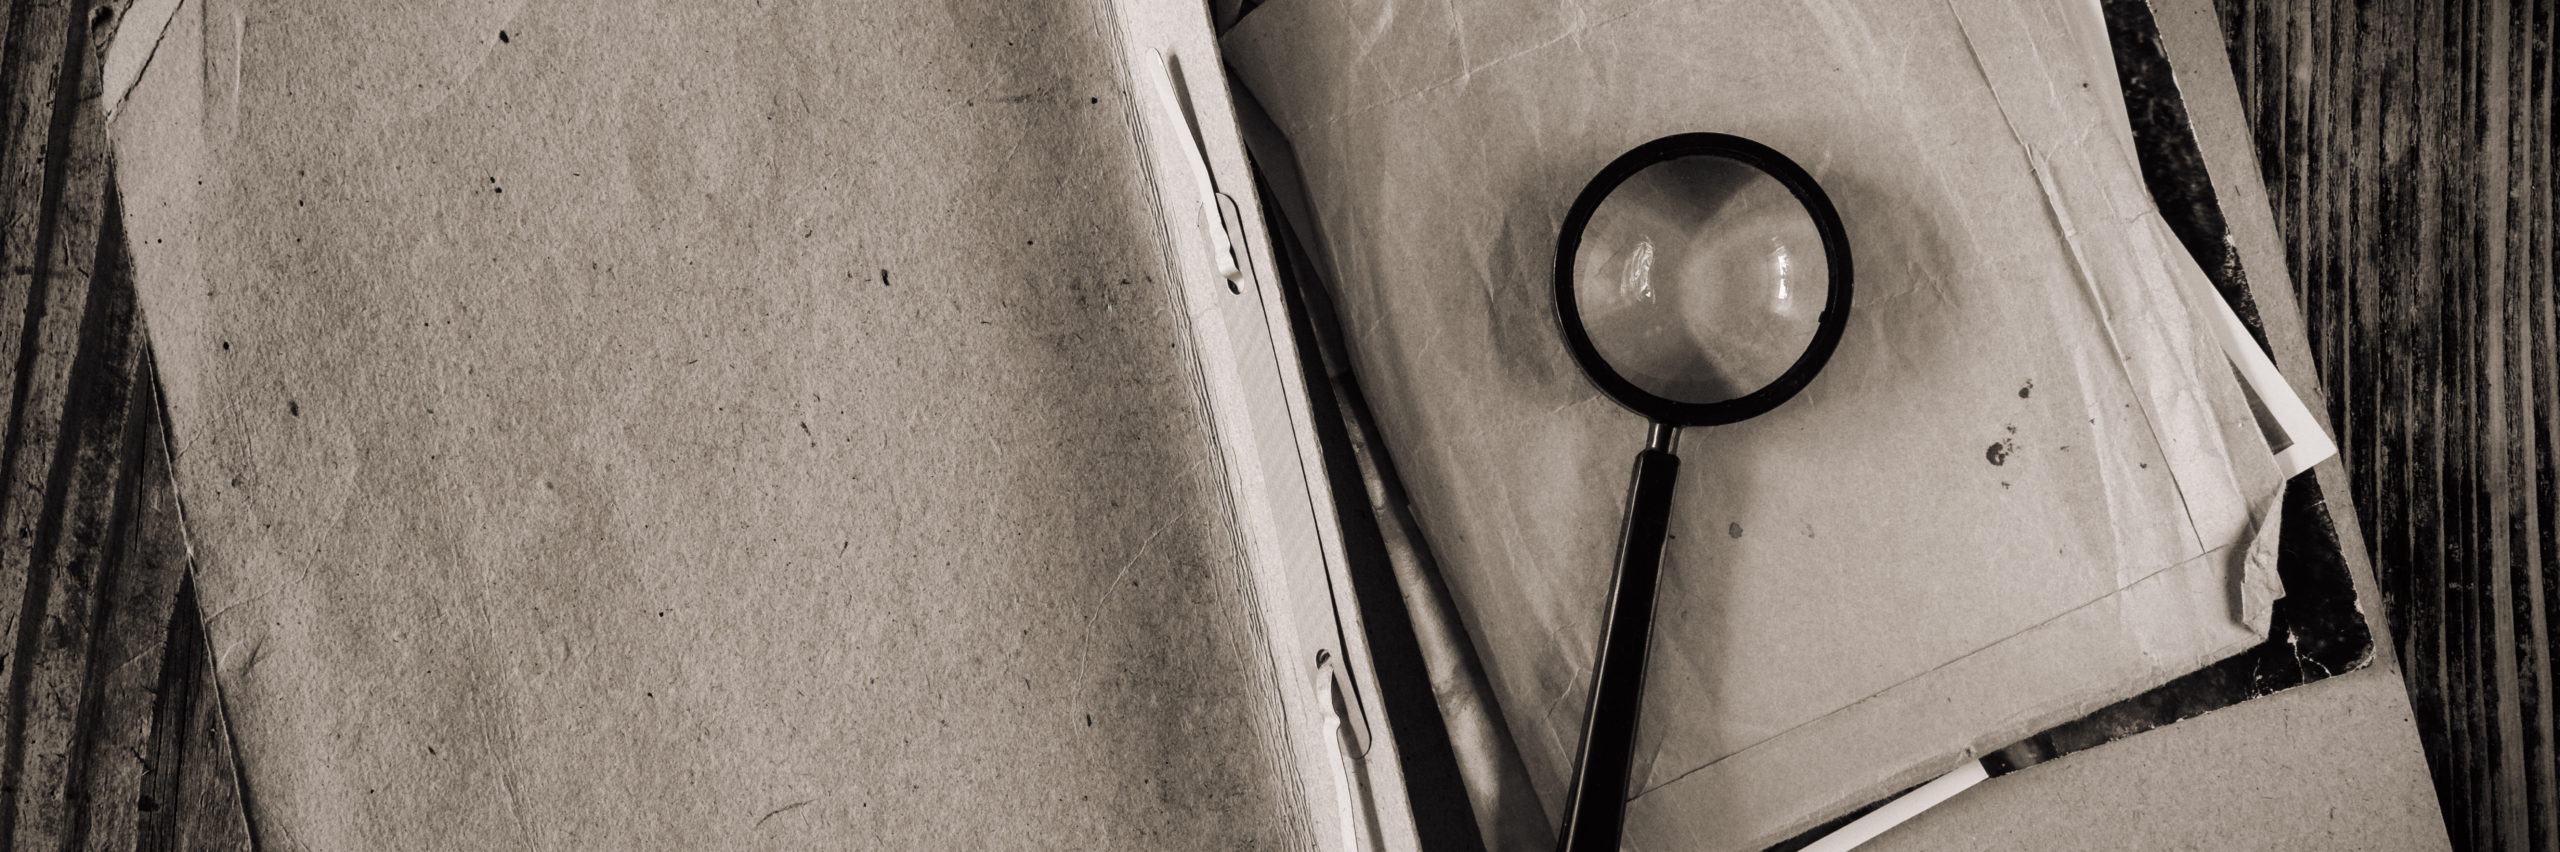 Magnifying glass with vintage documents retro investigation spy discovery concept - Image